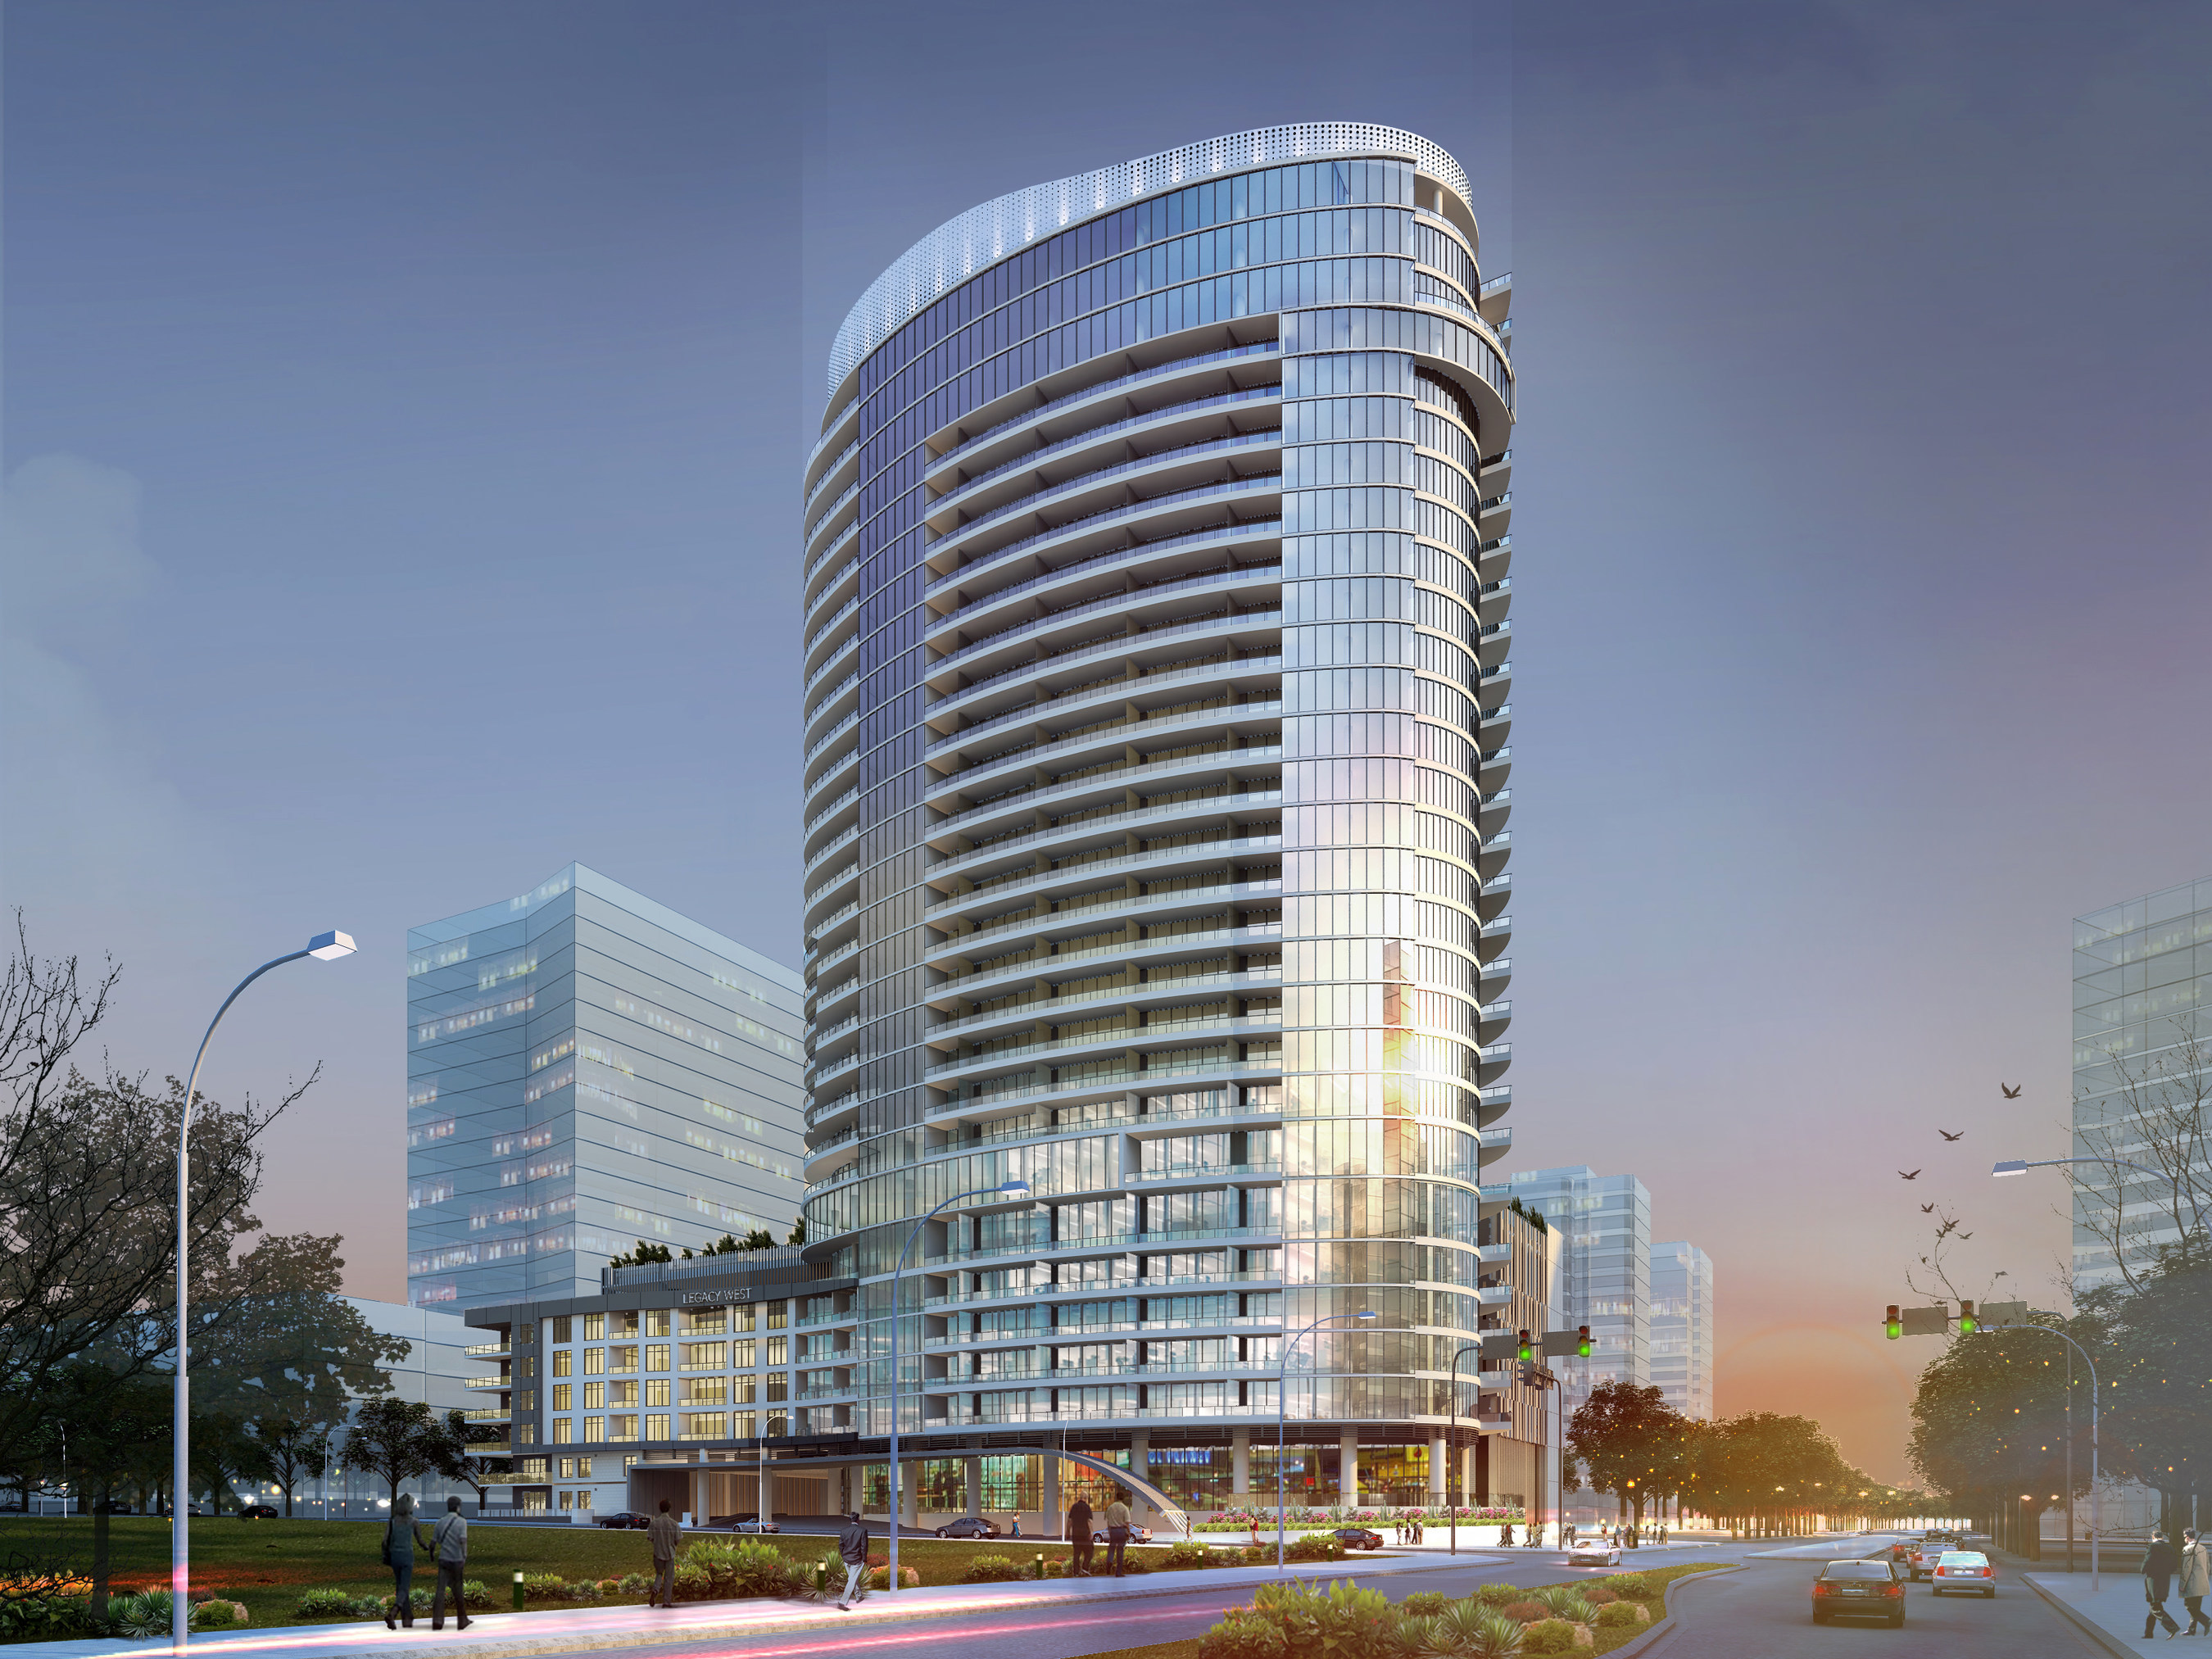 Palladium USA International To Build 30-Story Luxury High-Rise In Plano's Legacy West